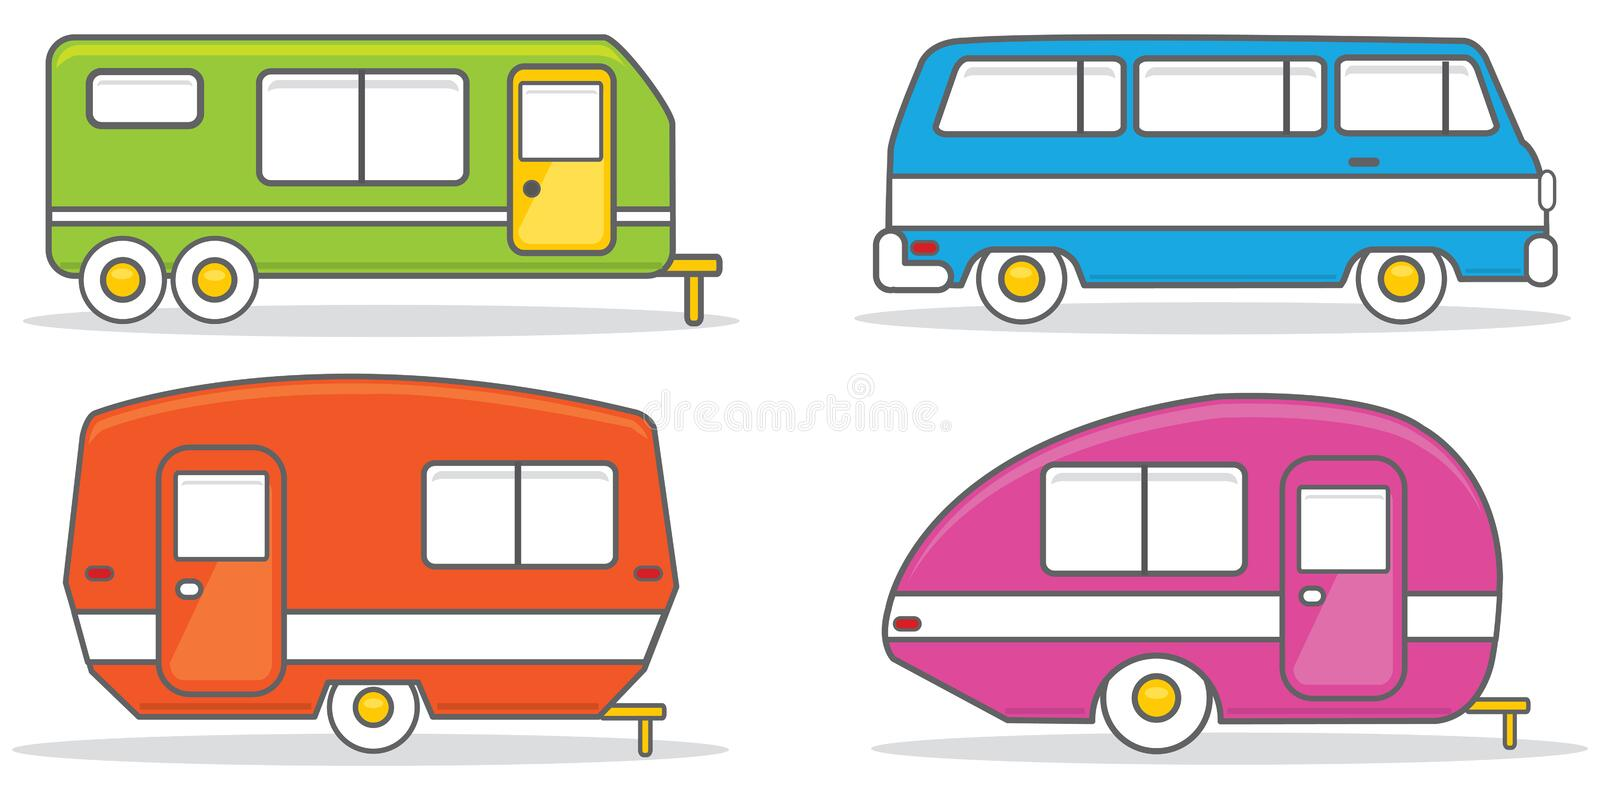 retro caravan mobile home illustration vector stock vector rh dreamstime com mobile home clipart black and white mobile home park clipart